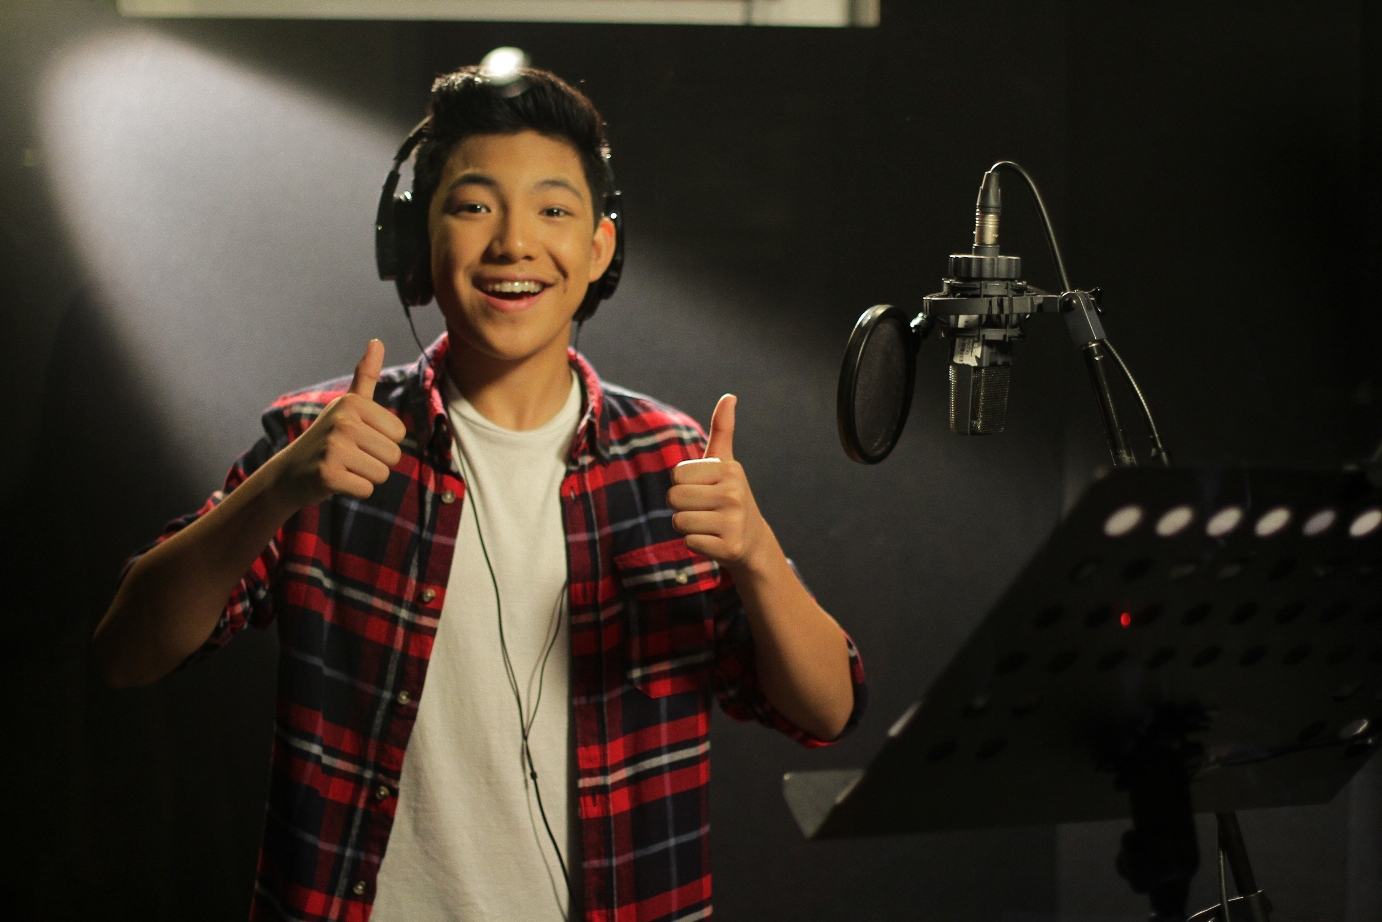 A New Jollibee Anthem for Independence Day COUNTDOWN ... Darren Espanto Life With Boys